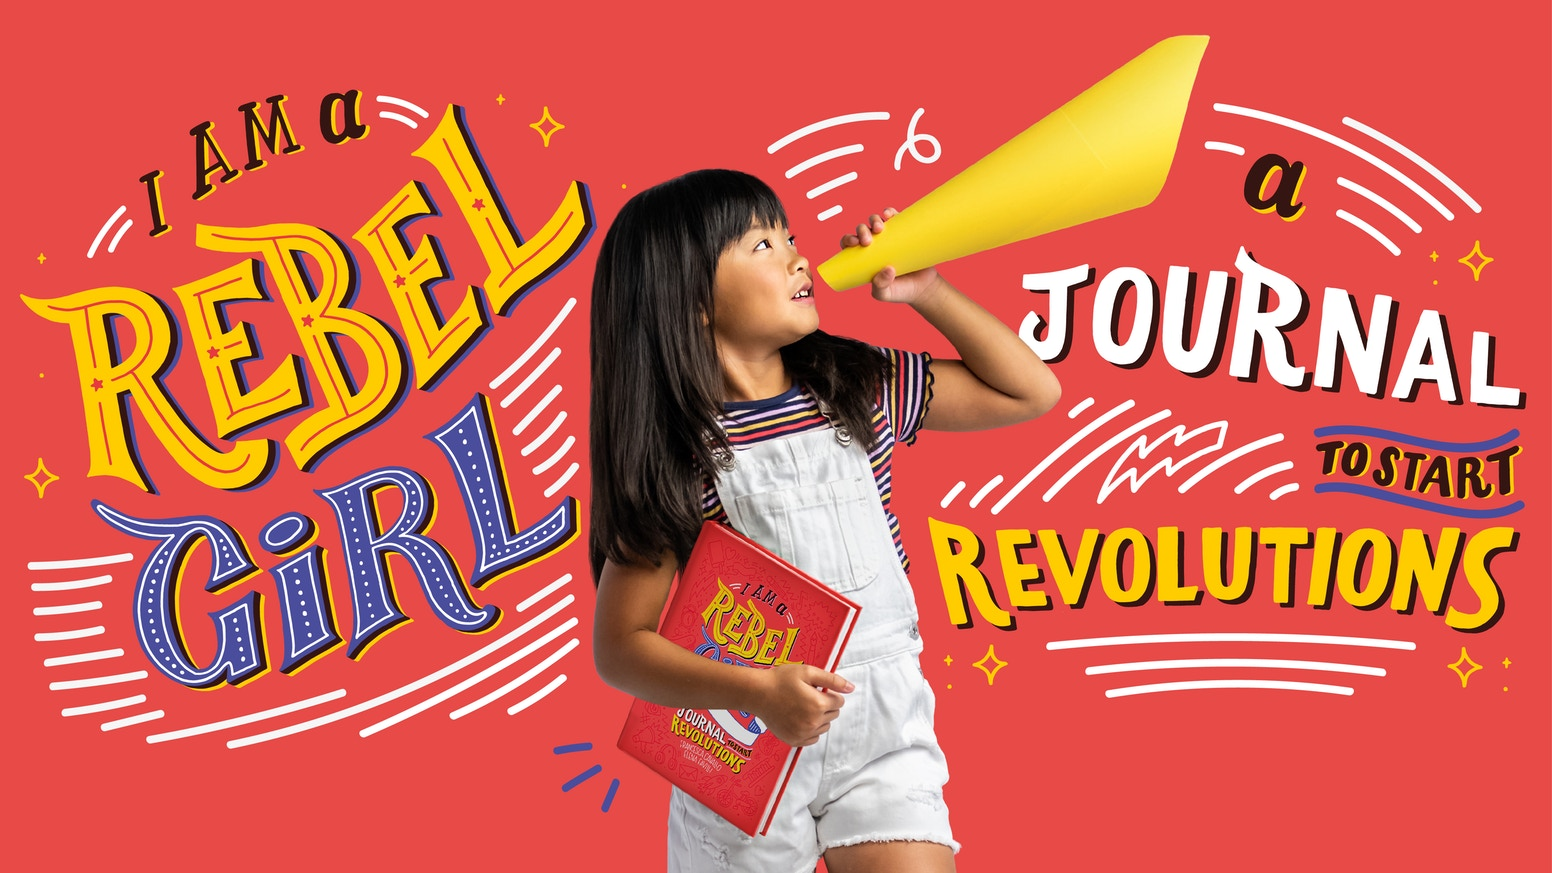 A guided journal that helps girls train their rebel spirit and lead the revolution of our time.